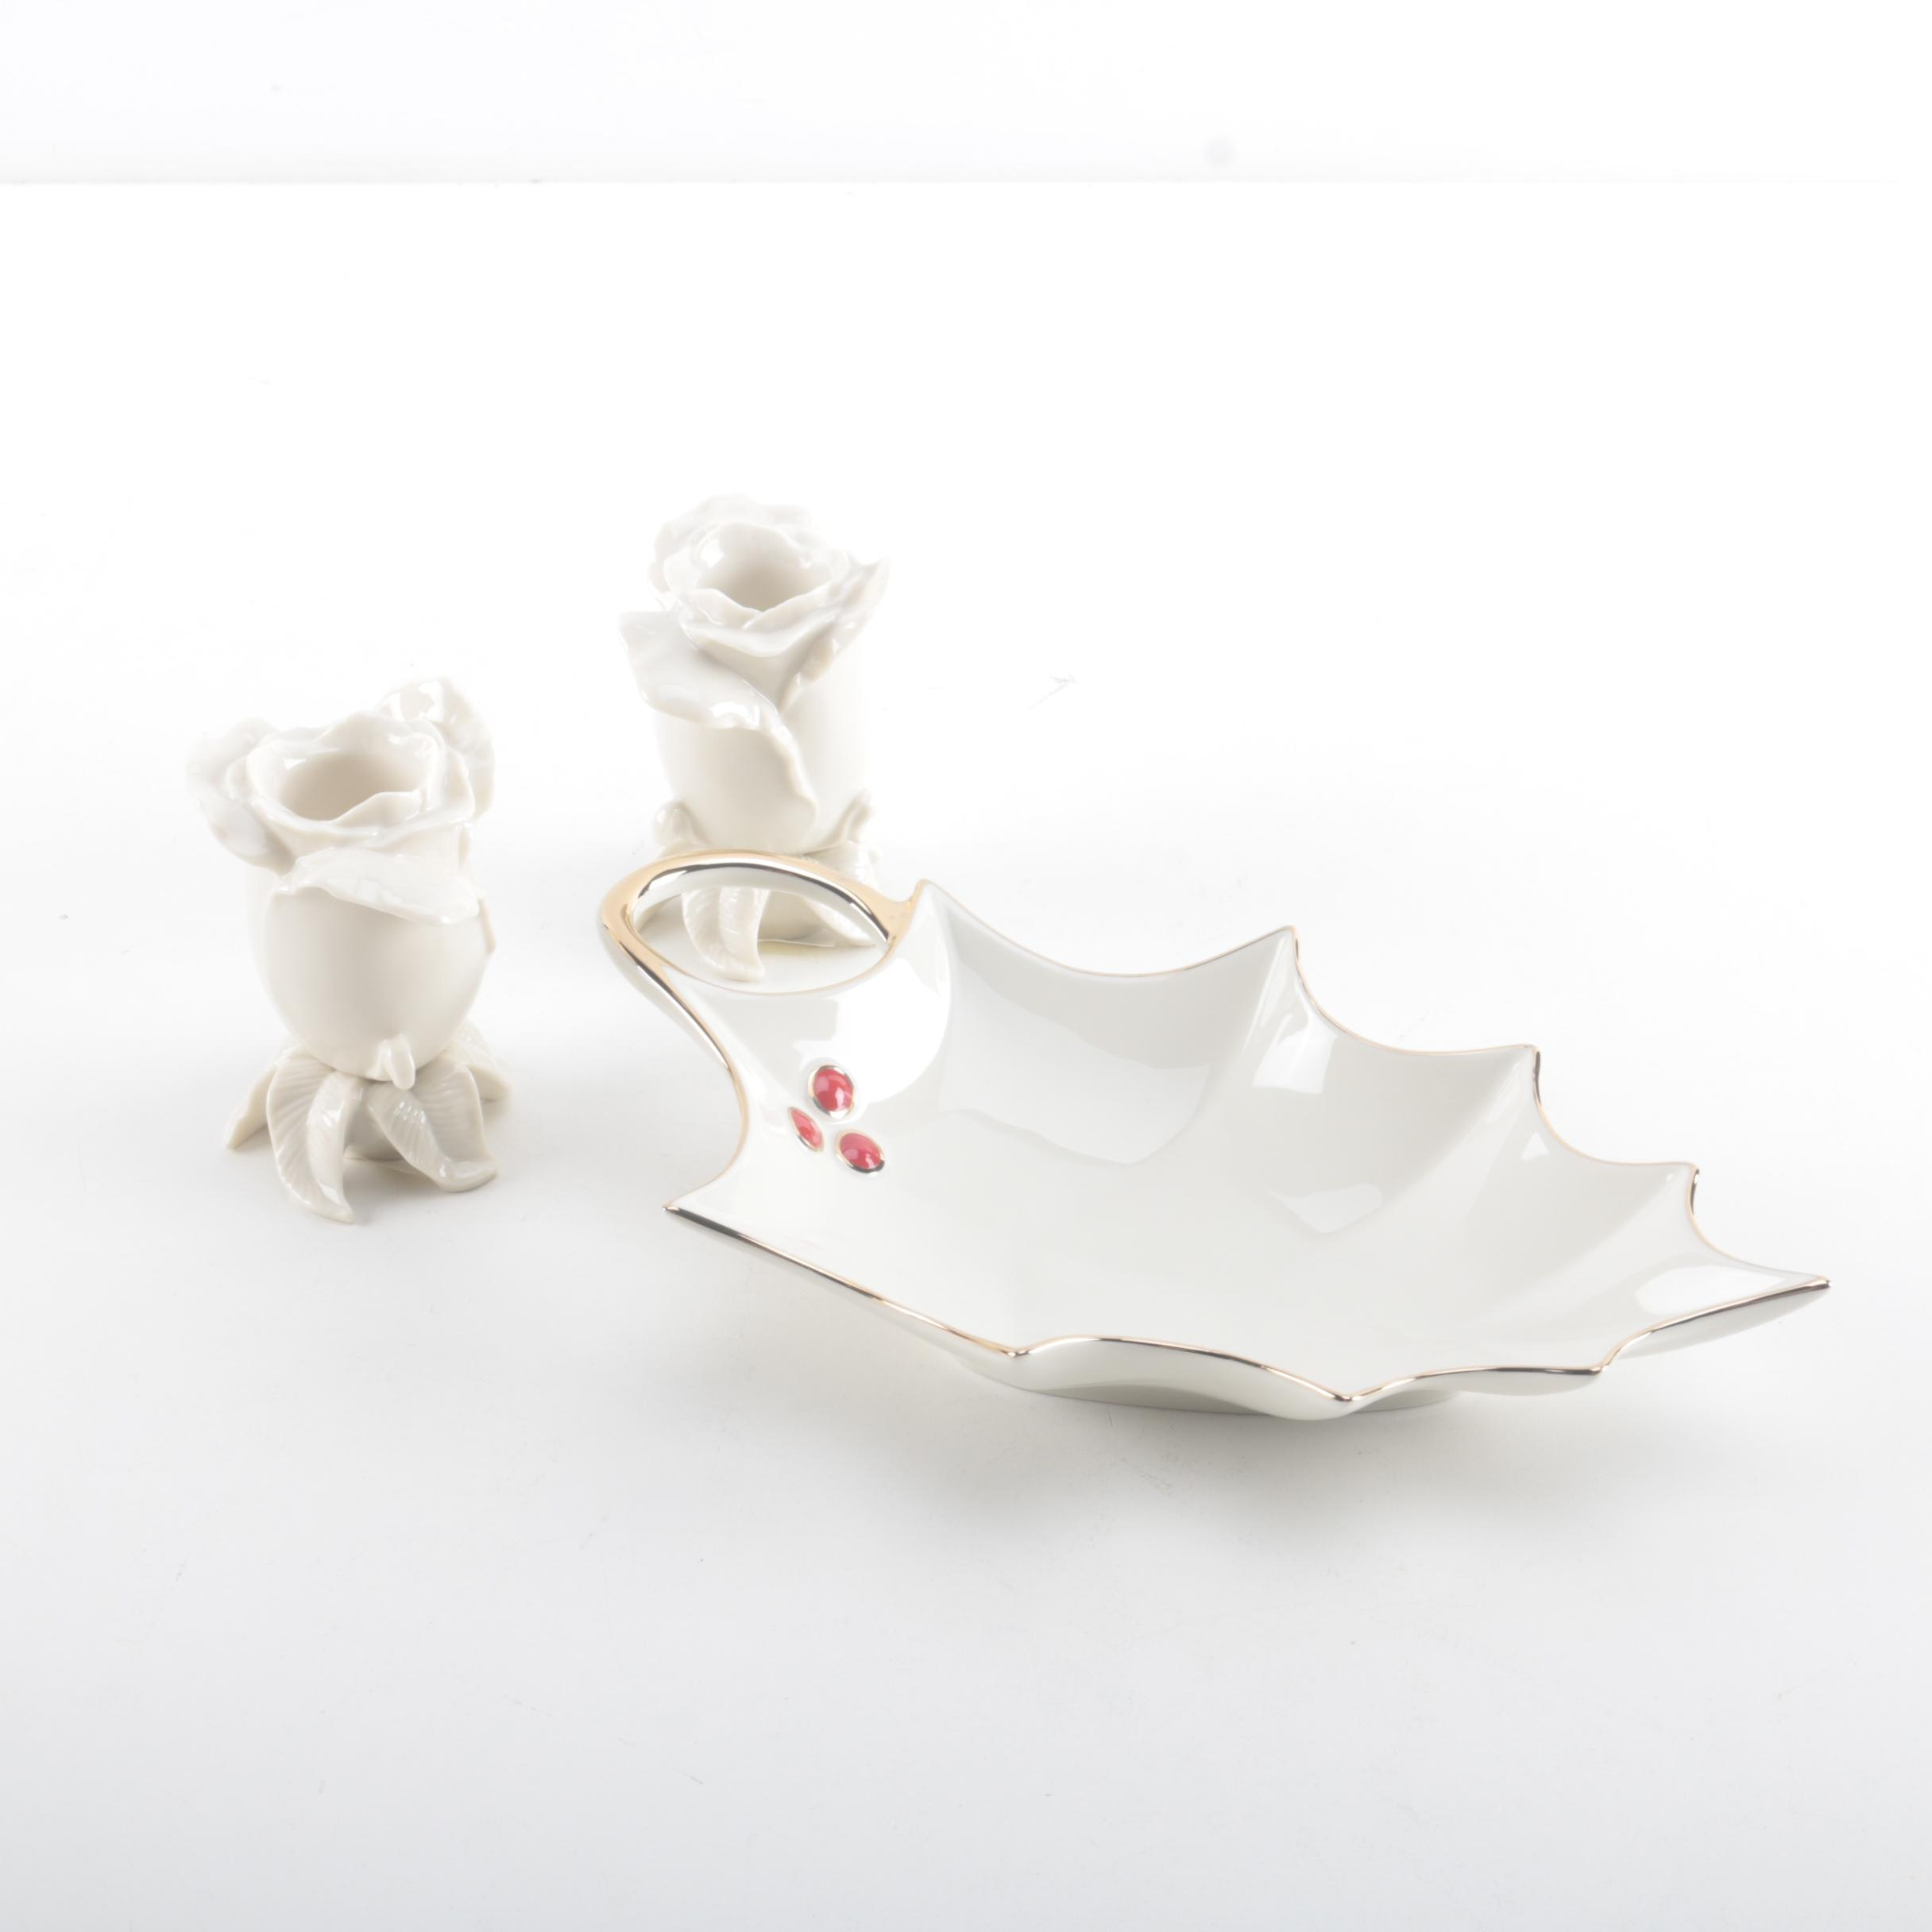 Lenox Porcelain Candle Holders and Dish